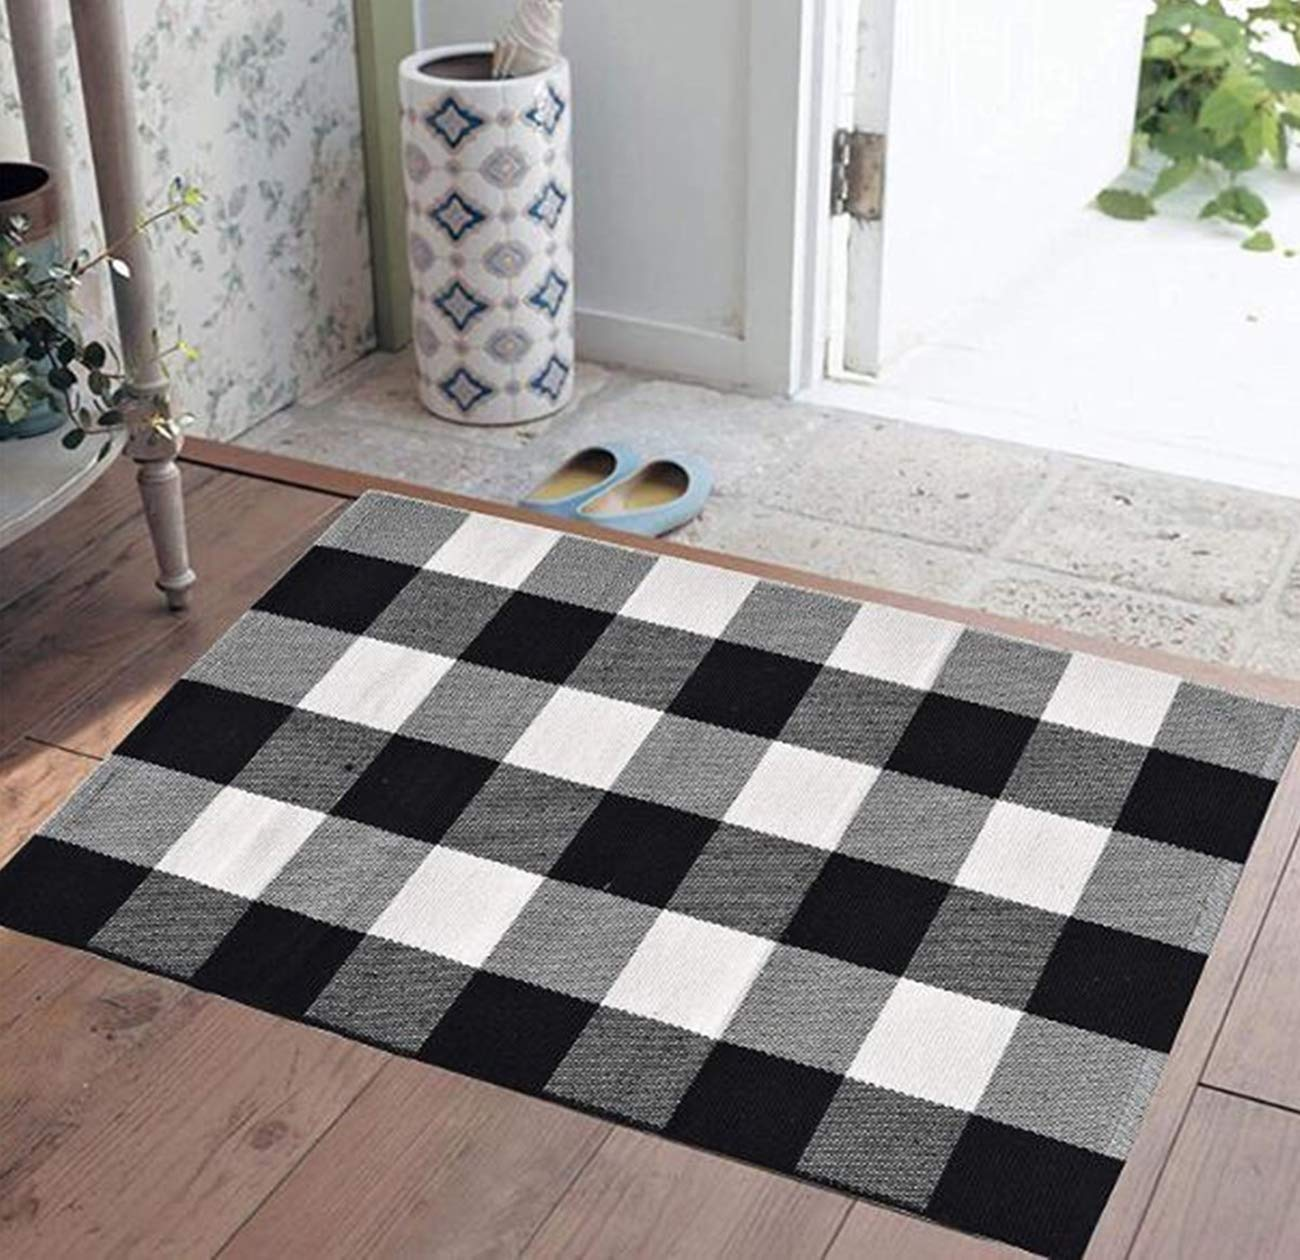 Buffalo Plaid Rug Indoor Outdoor Buffalo Check Rug, Farmhouse Rugs for Doorway Kitchen/Bathroom/Front Porch/Decor - Layered Welcome Plaid Rug Doormats (24